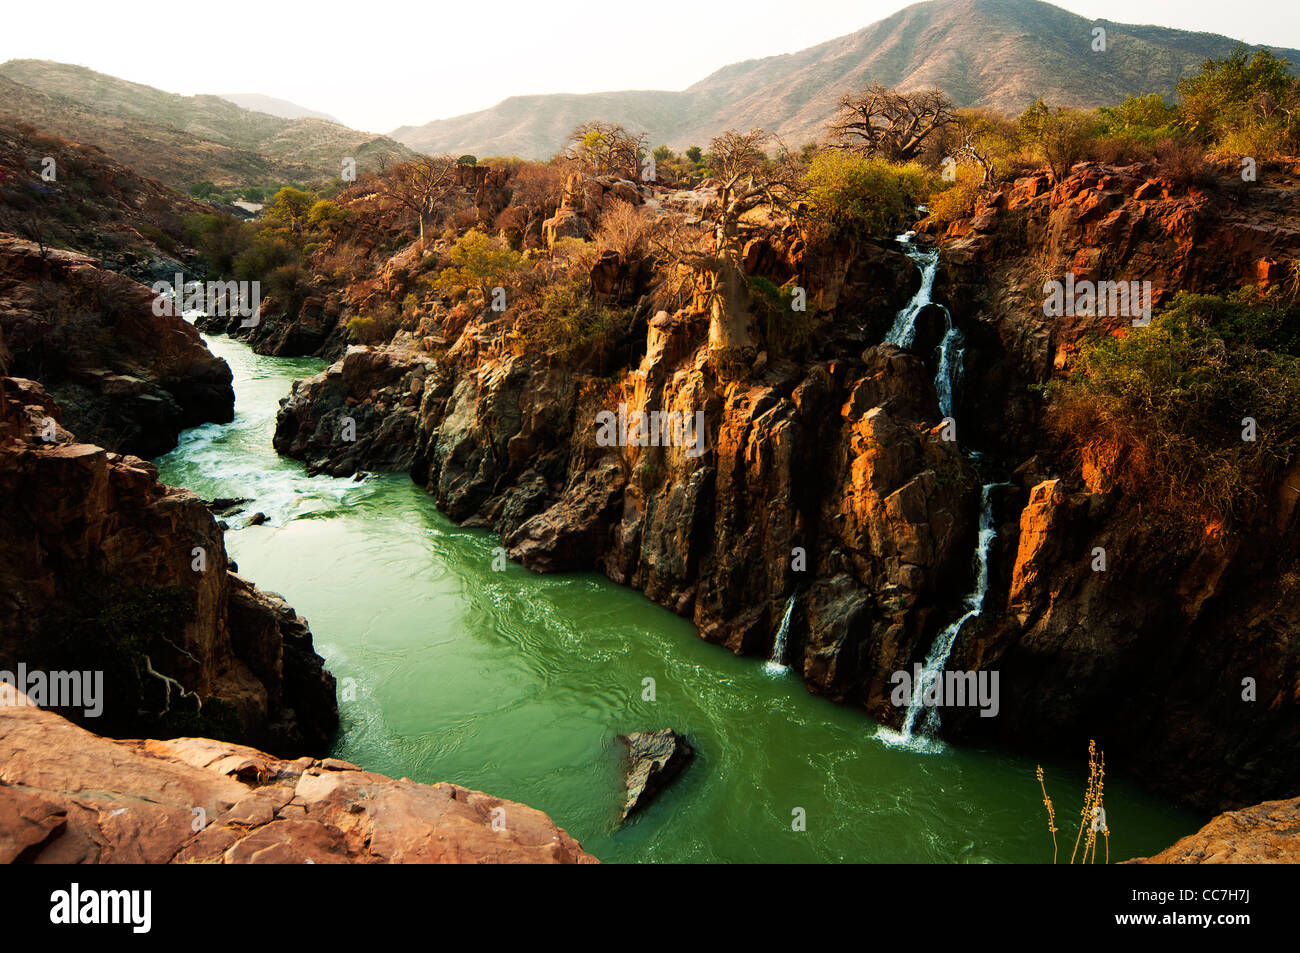 Epupa Falls on the Kunene River, northern Namibia - Stock Image